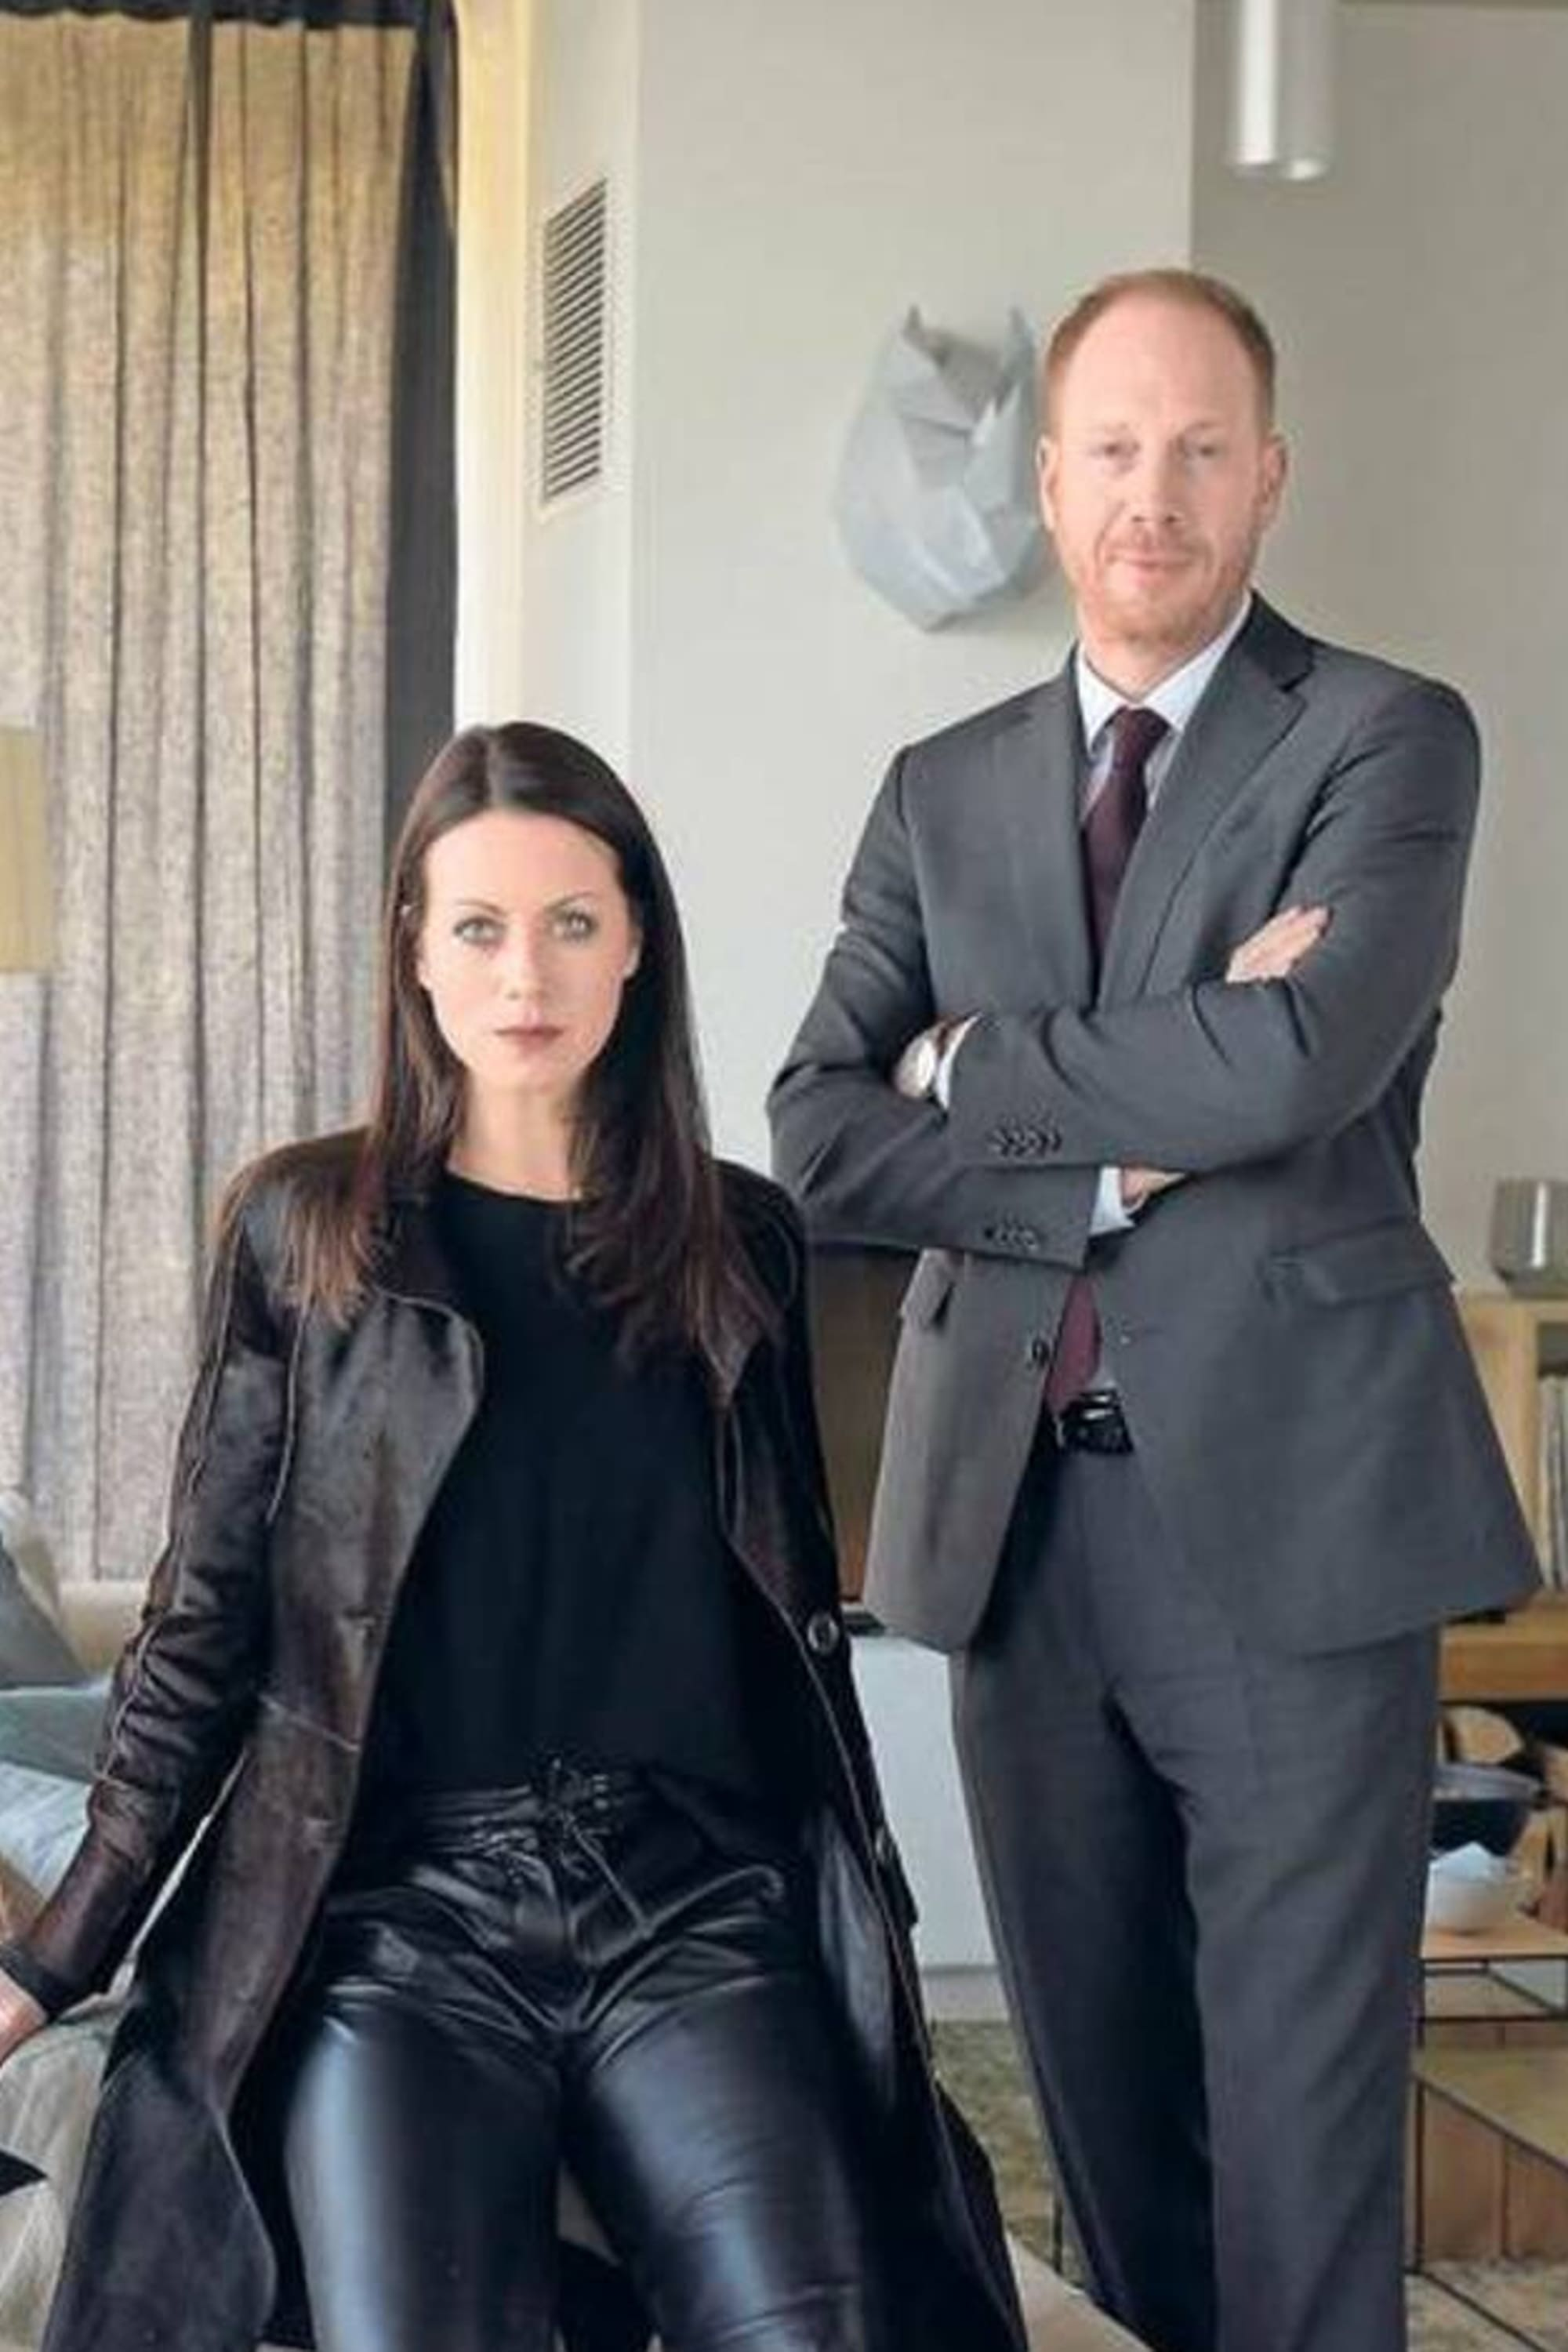 Herr und Frau Bulle TV Shows About Police Detective